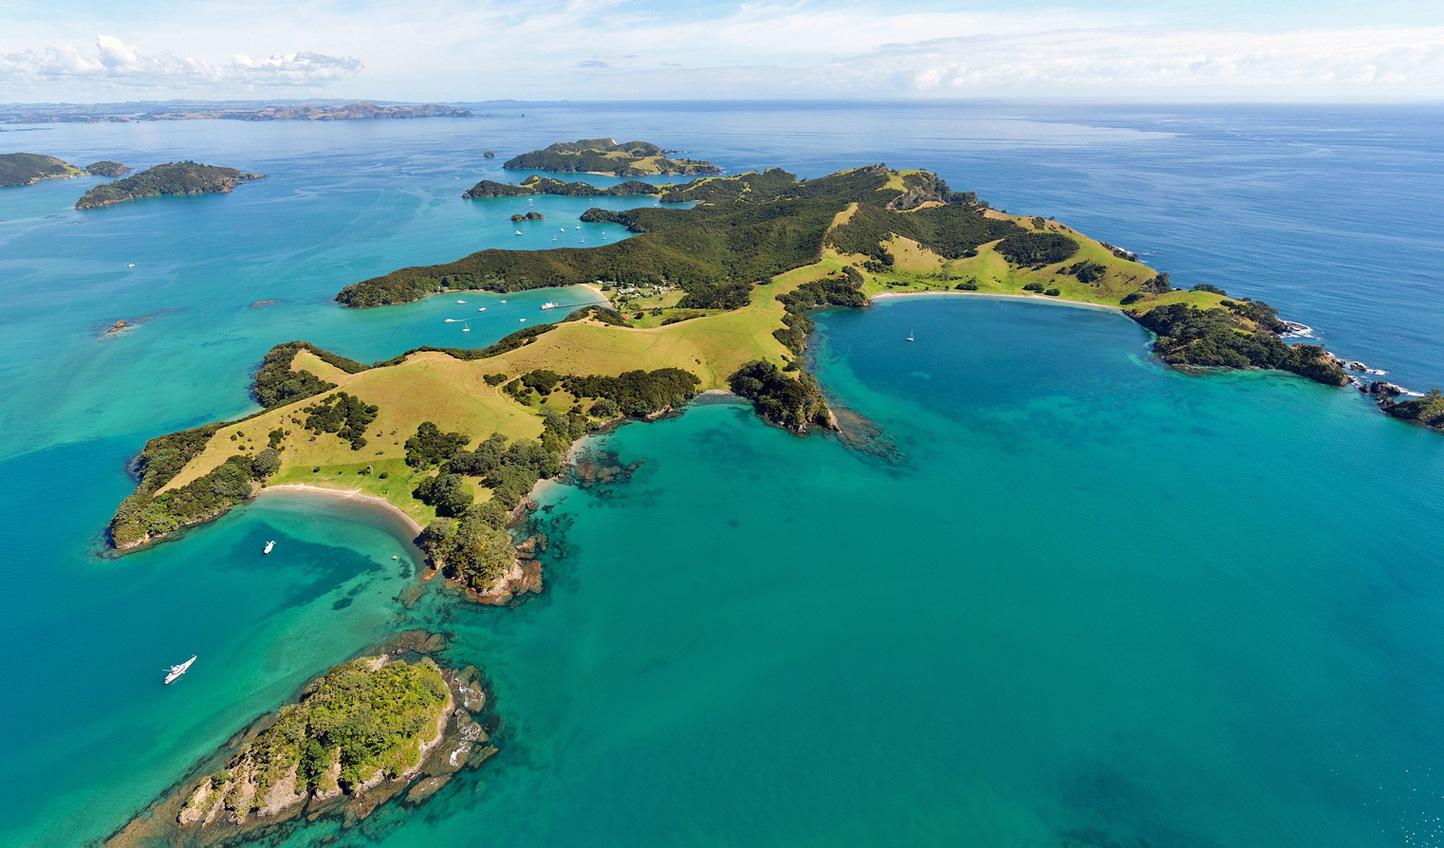 Discover the islands of the Pacific down in New Zealand and French Polynesia